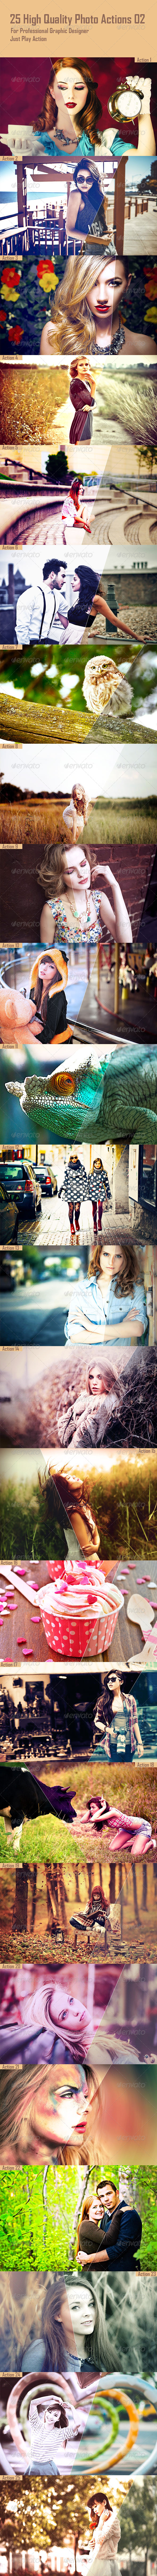 GraphicRiver 25 High Quality Photo Actions 02 8685527